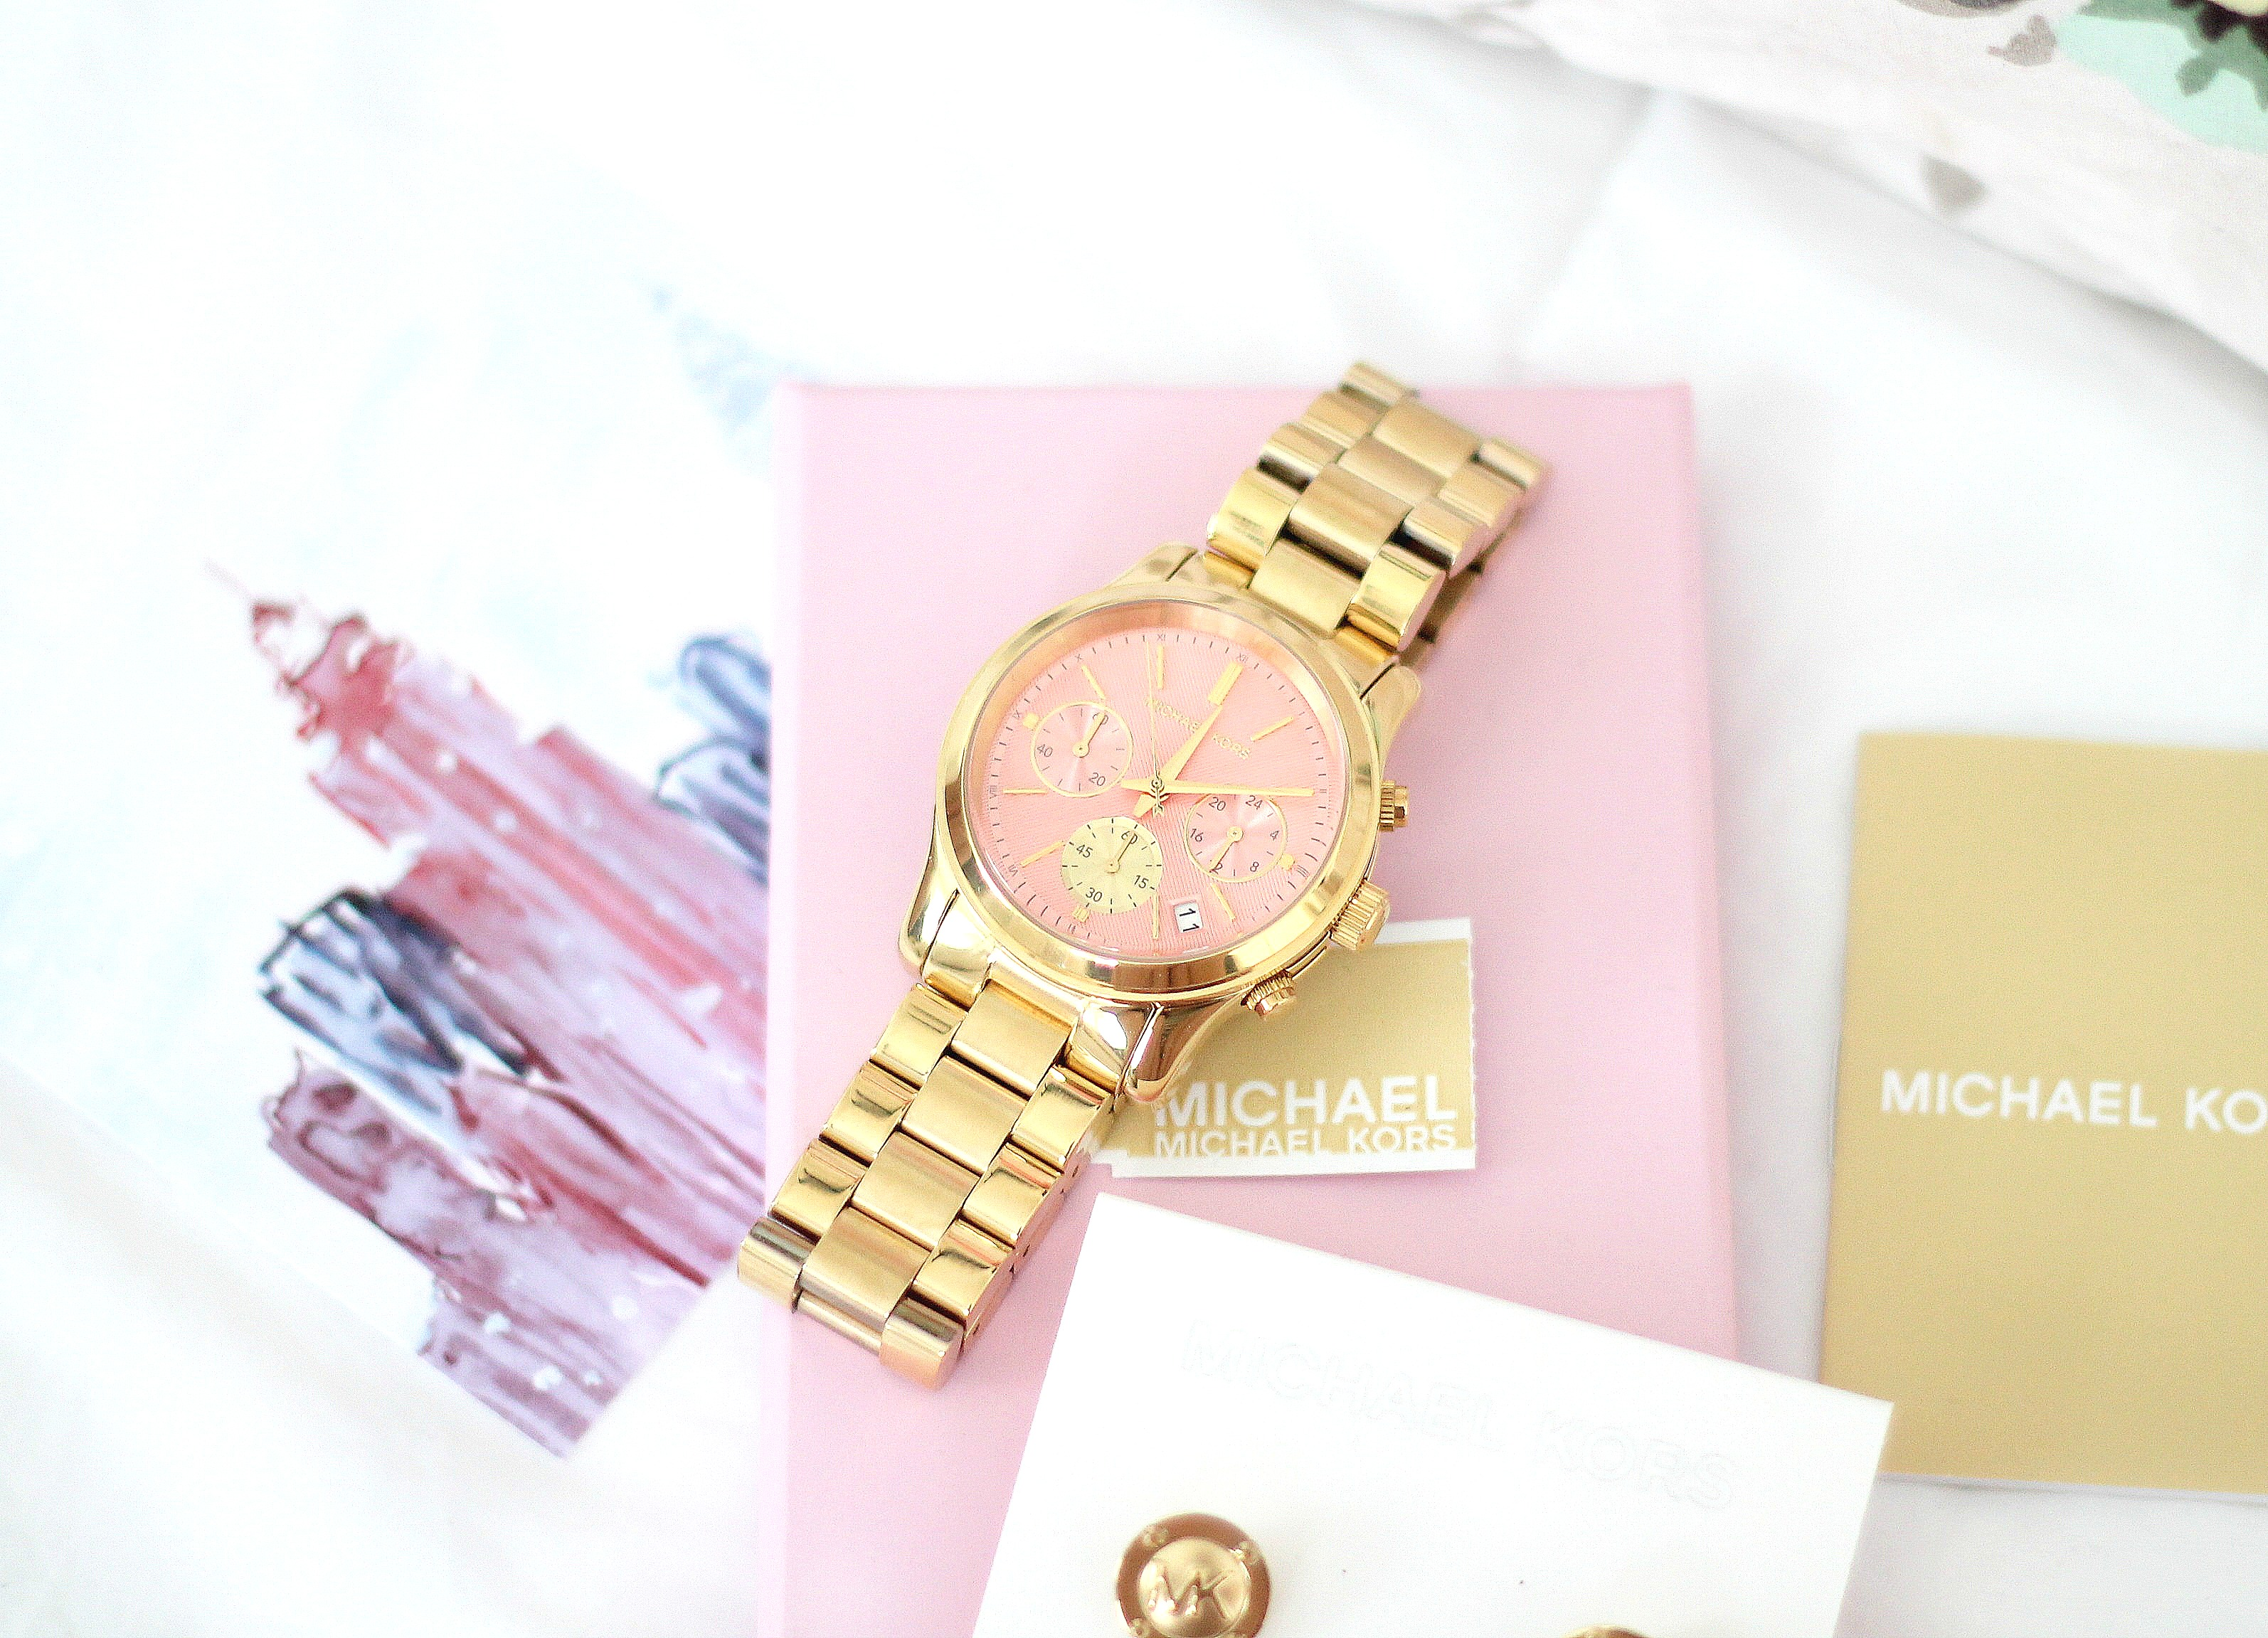 Michael Kors watch gold